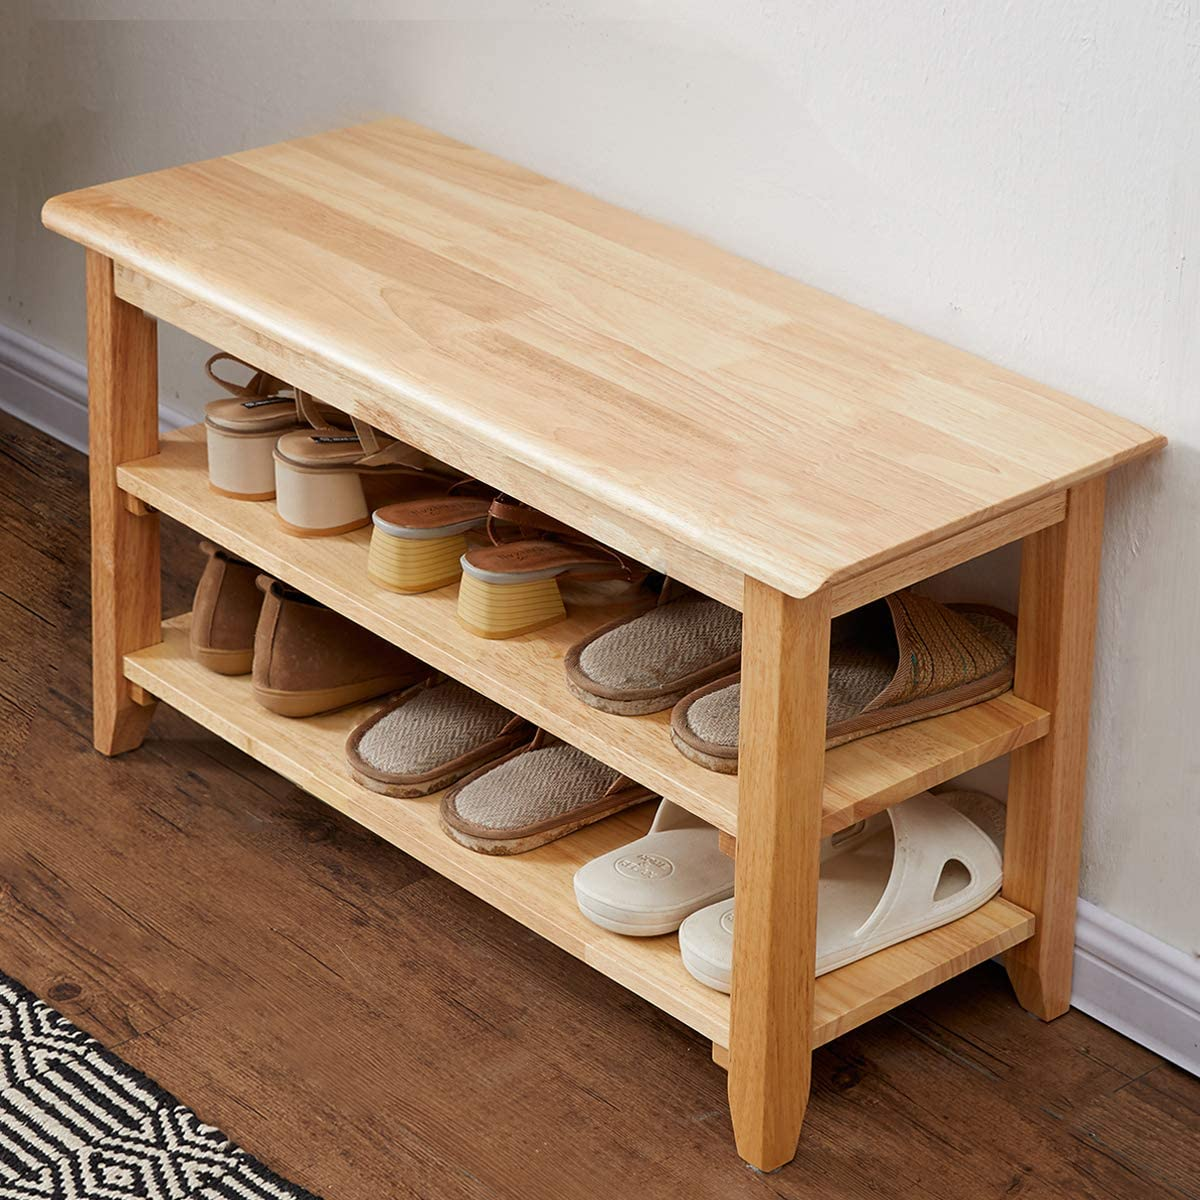 Wooden storage bench with shoes